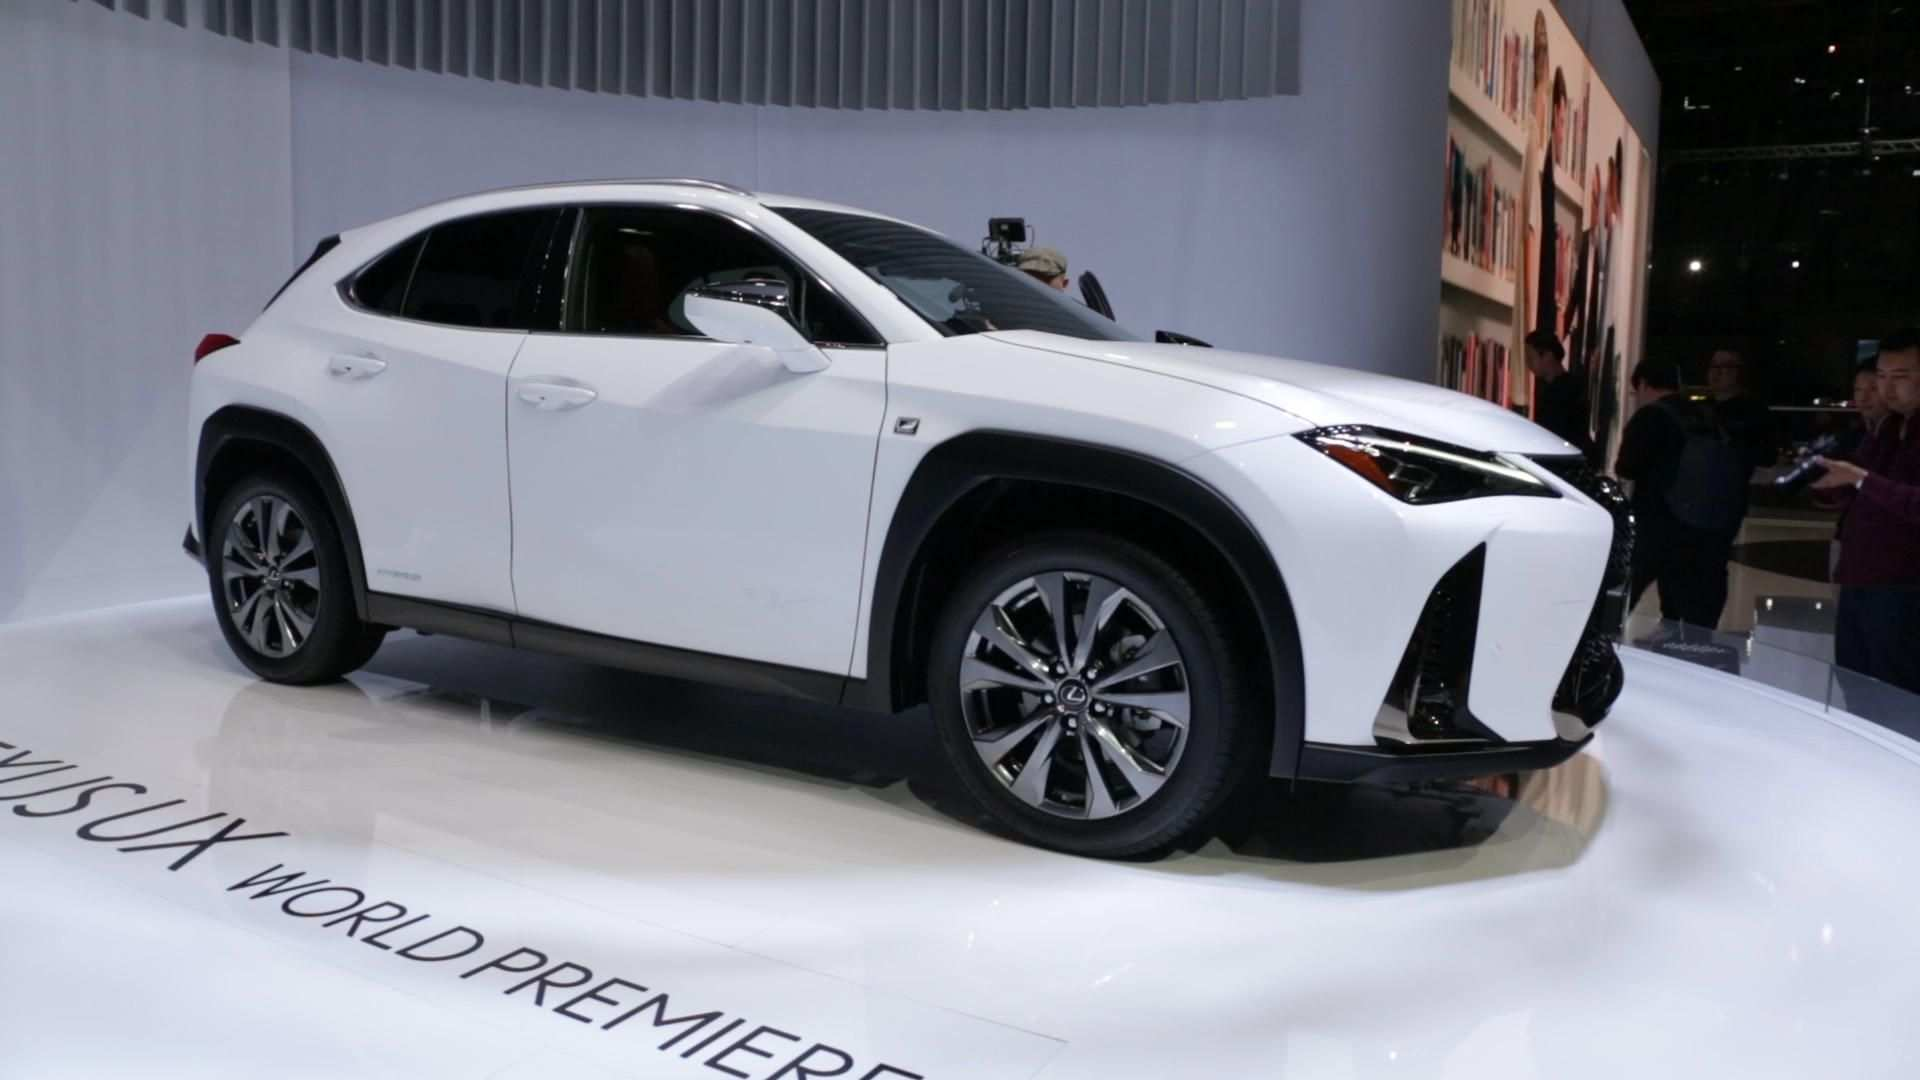 43 All New 2019 Lexus Ux Release Date Price Design And Review